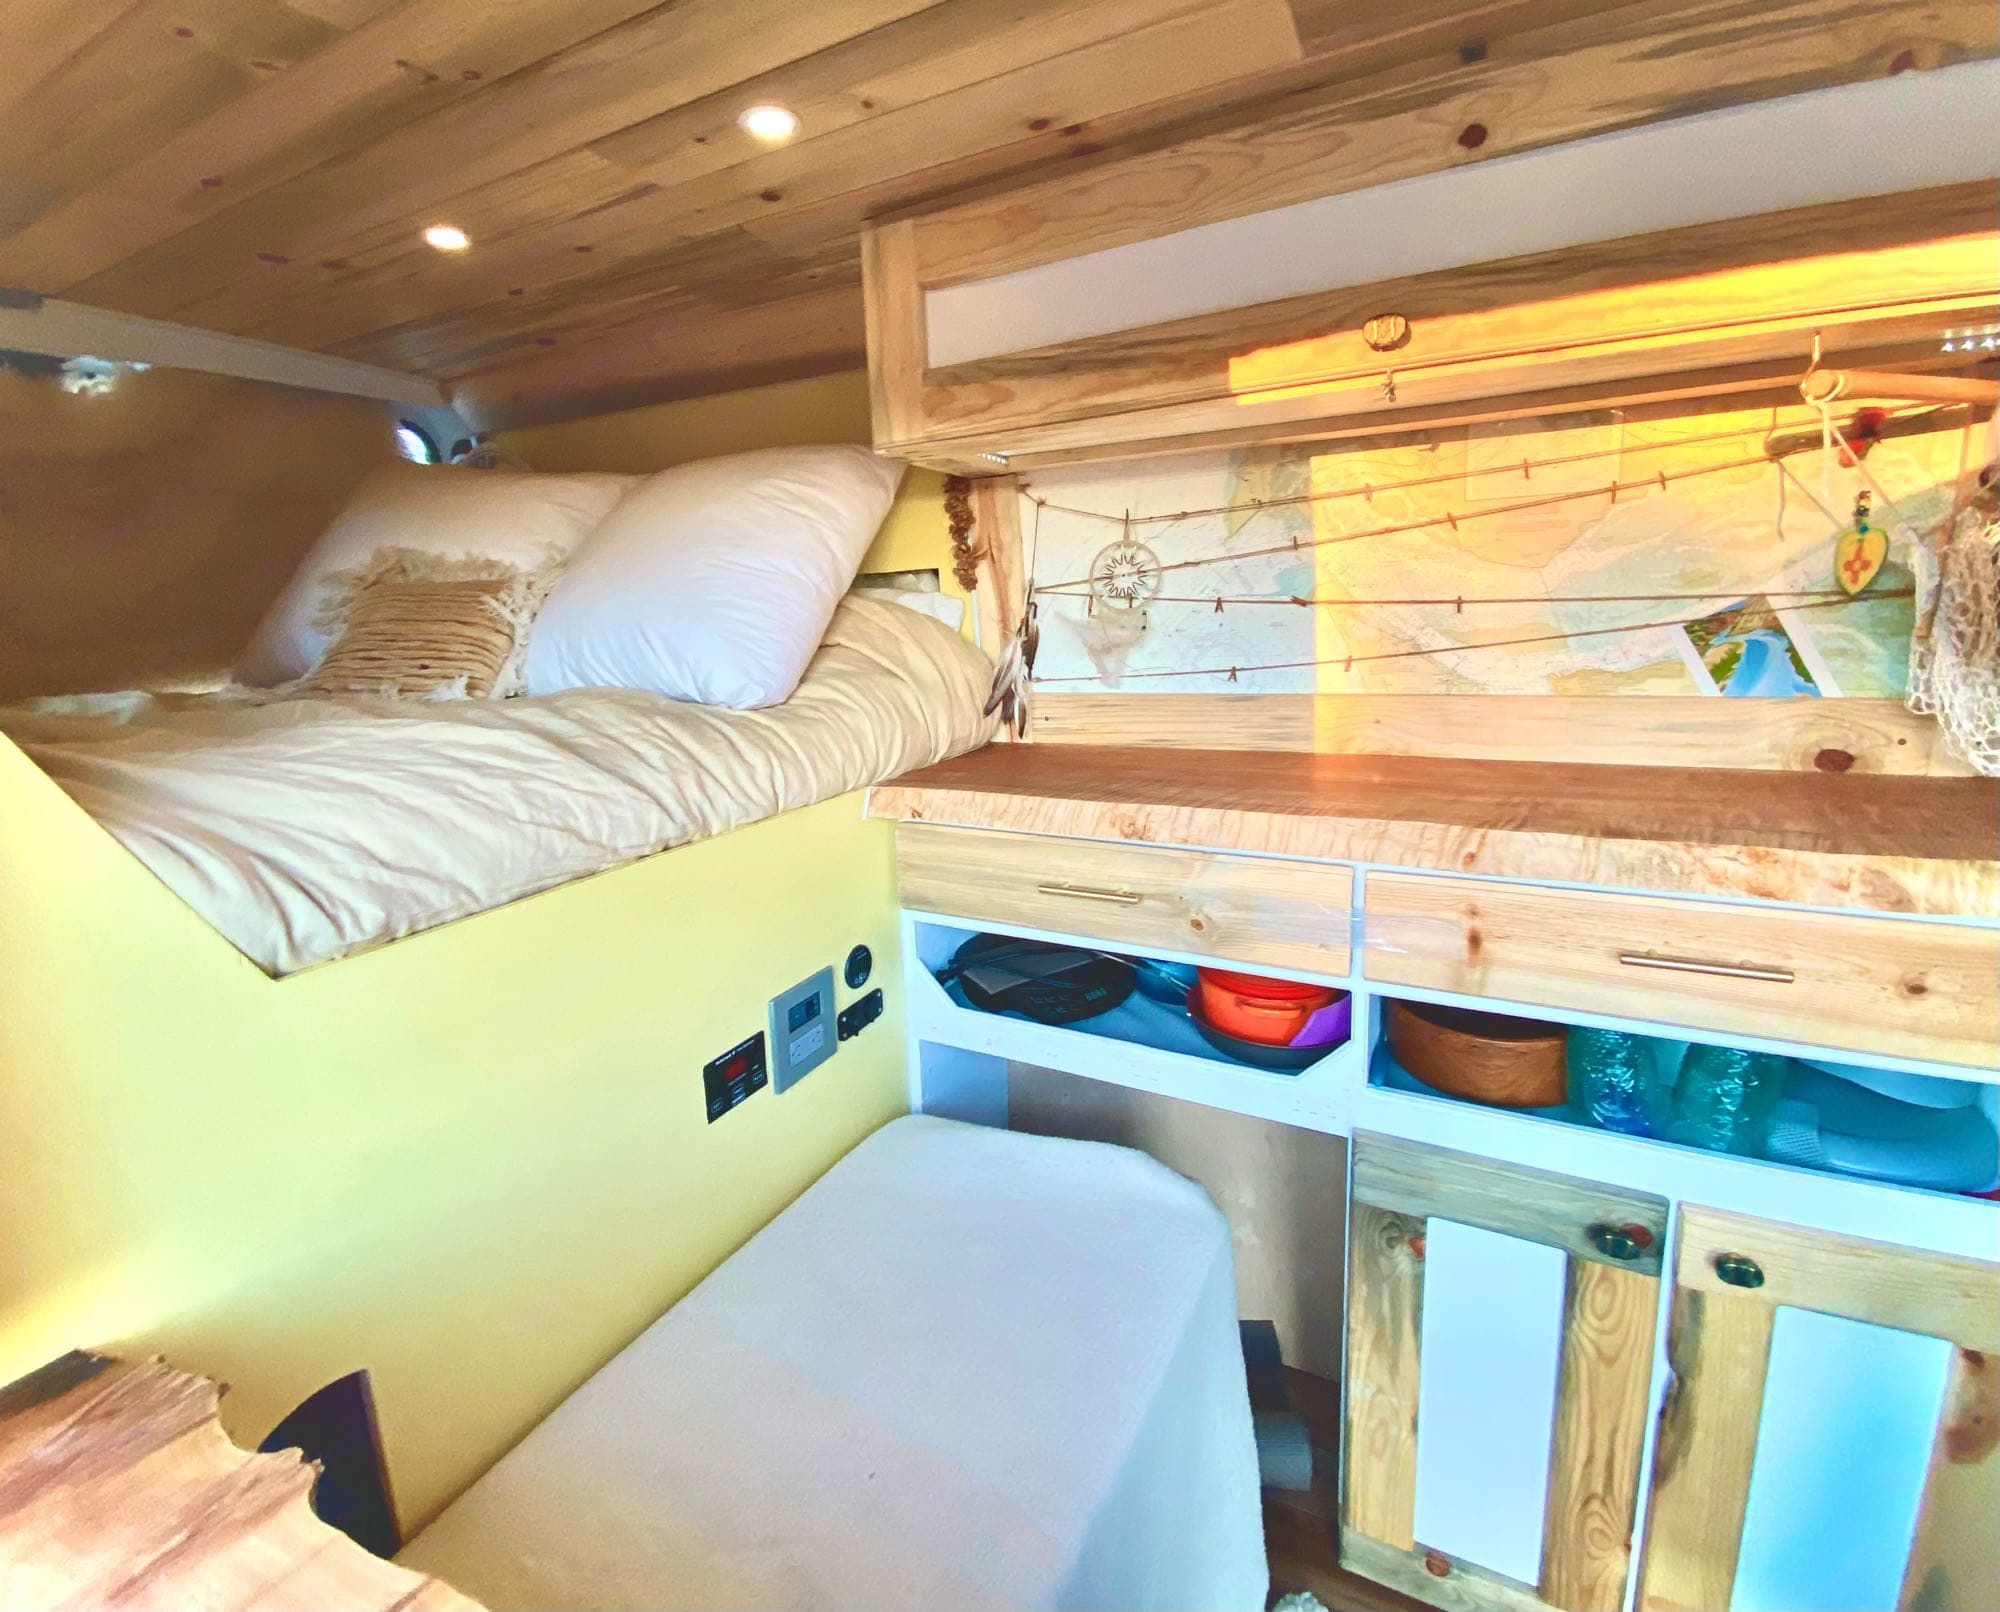 Creative, whimsical, and highly functional! Lovely woodwork with natural edge counter tops, faerie lights, ample storage. Ultra-dreamy mobile retreat!. Dodge Other 2019